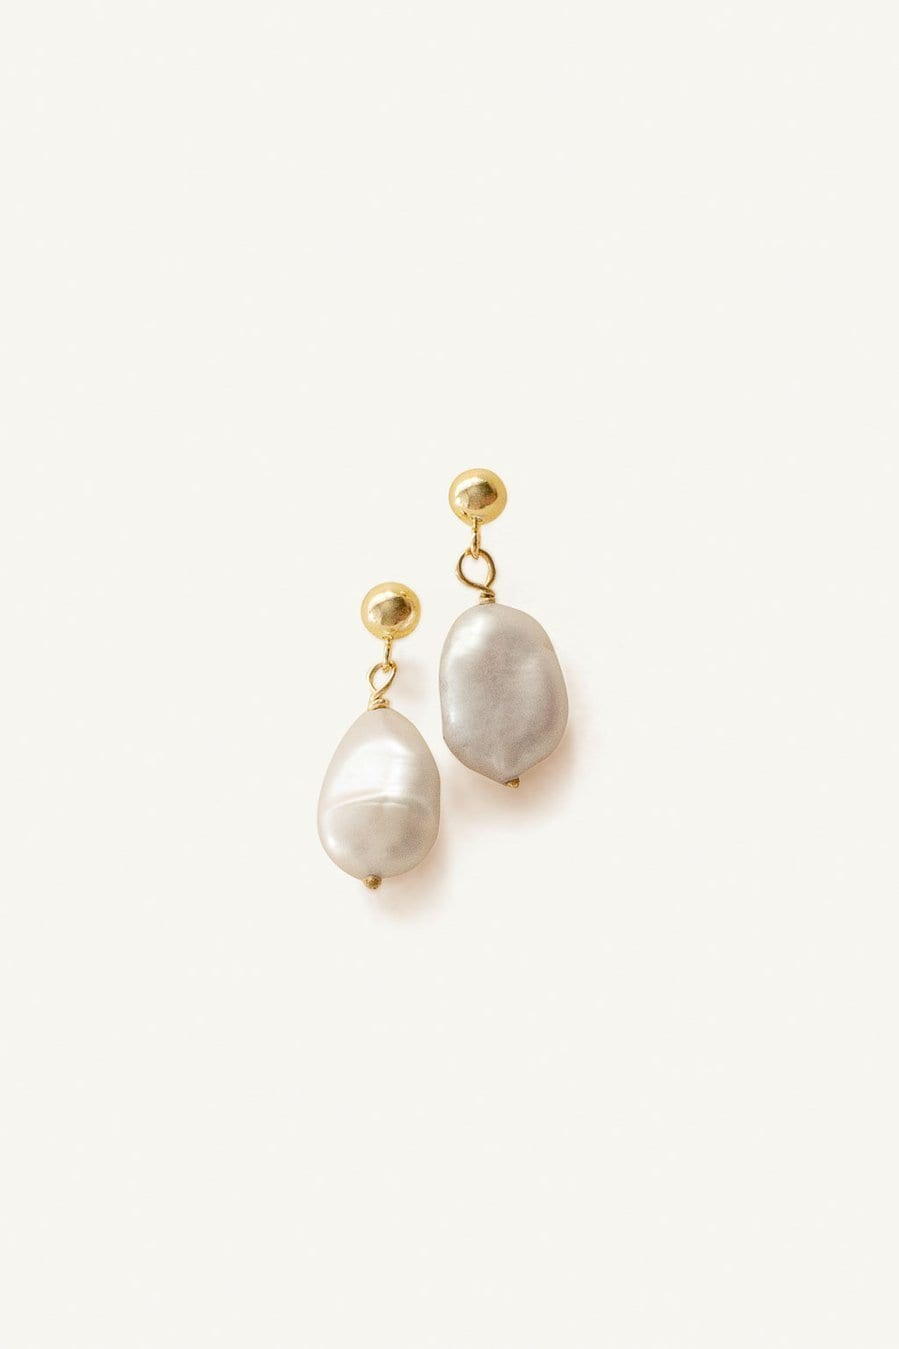 Baroque Pearl Drop Earrings / Neighborhood Goods